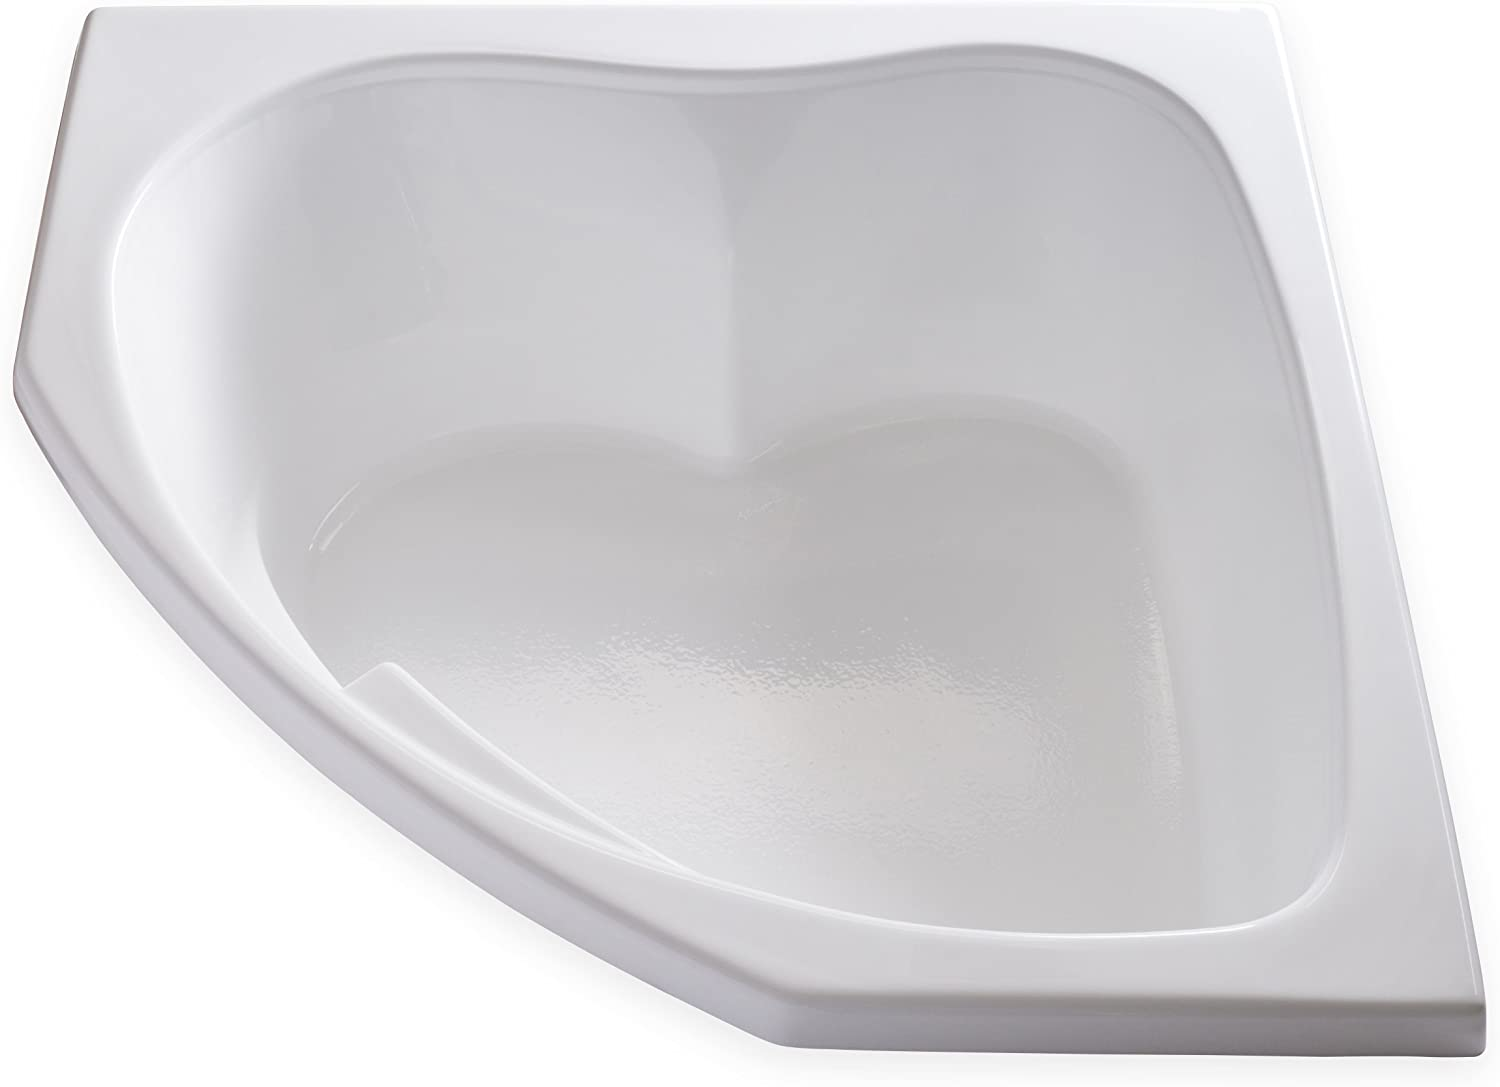 Carver Tubs – SKC5555-55 L x 55 W x 18.5 H – White Drop In Corner Two Person Soaking Bathtub